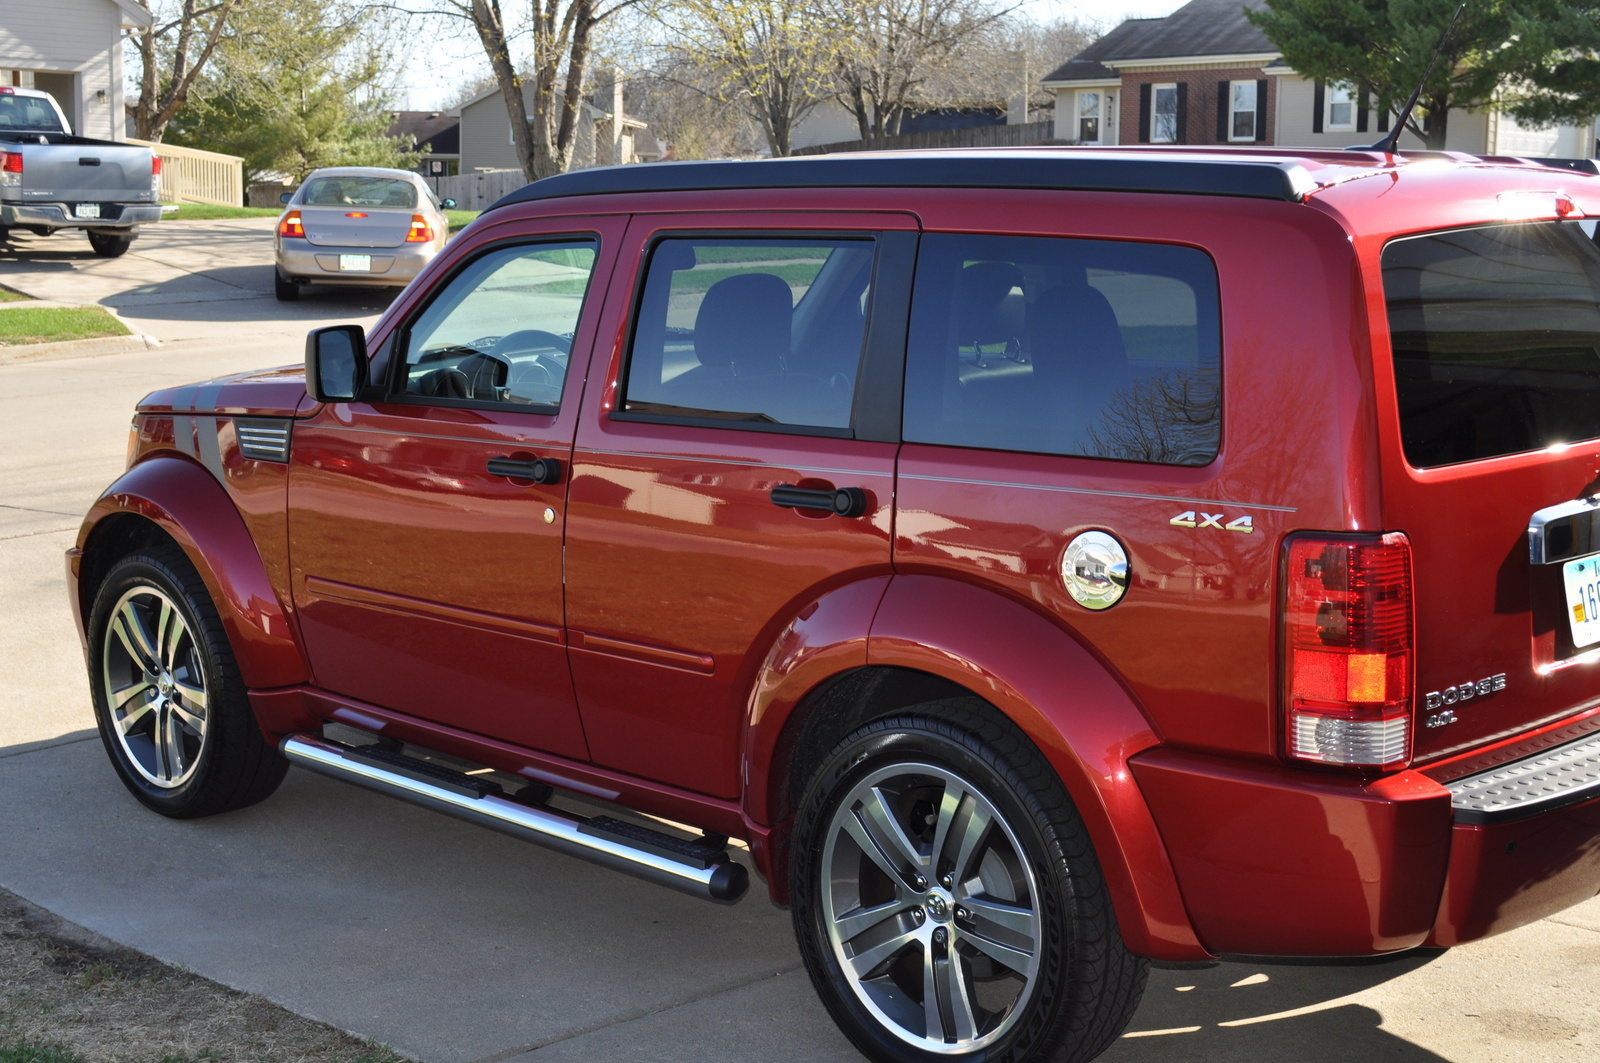 used 2011 dodge nitro for sale carmax autos post. Black Bedroom Furniture Sets. Home Design Ideas